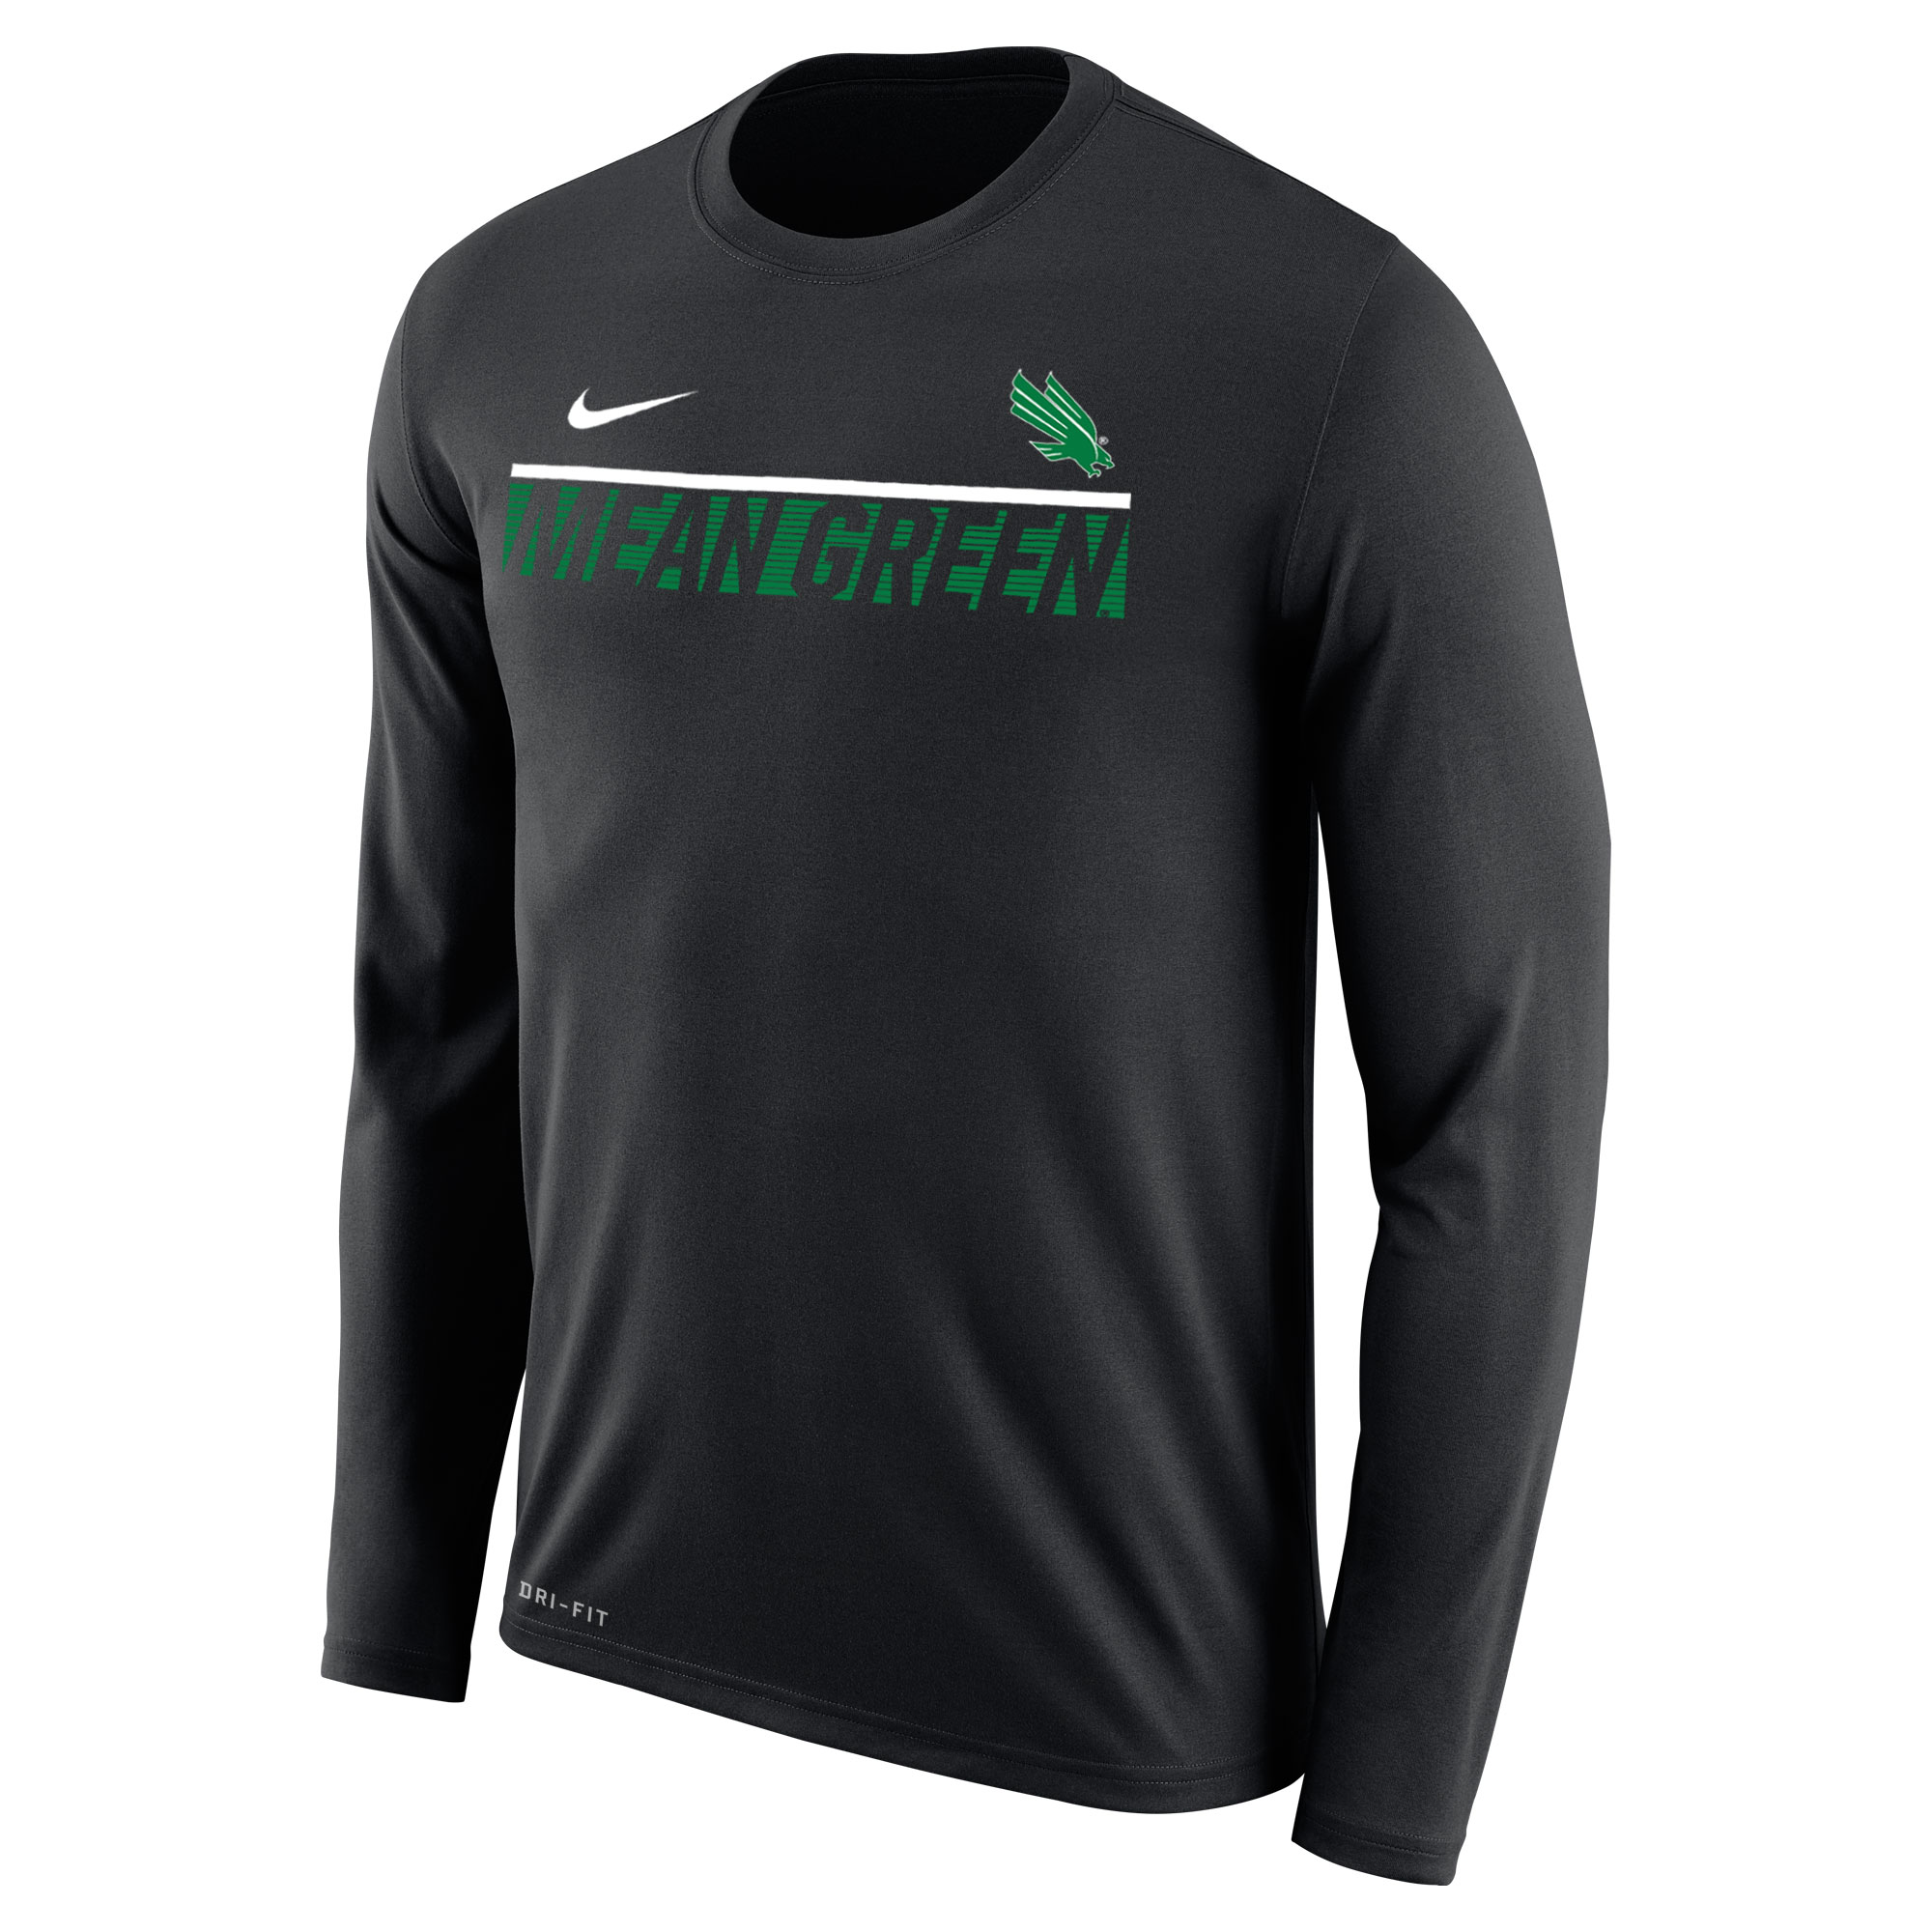 MENS NIKE LEGEND LS